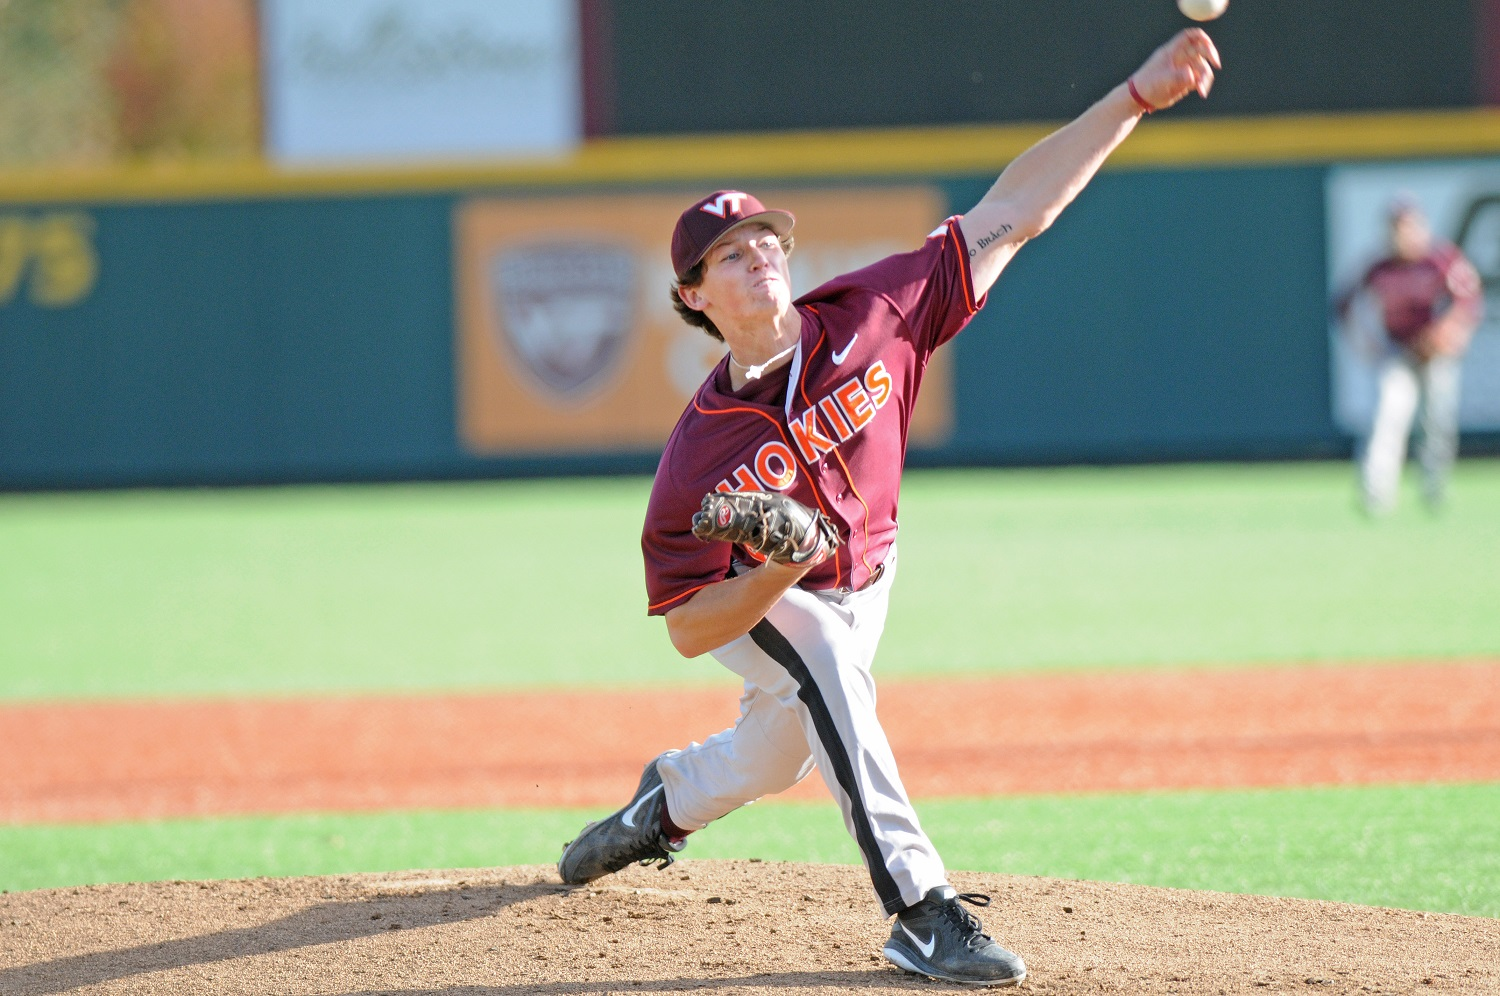 Packy Naughton, photo courtesy of Virginia Tech.